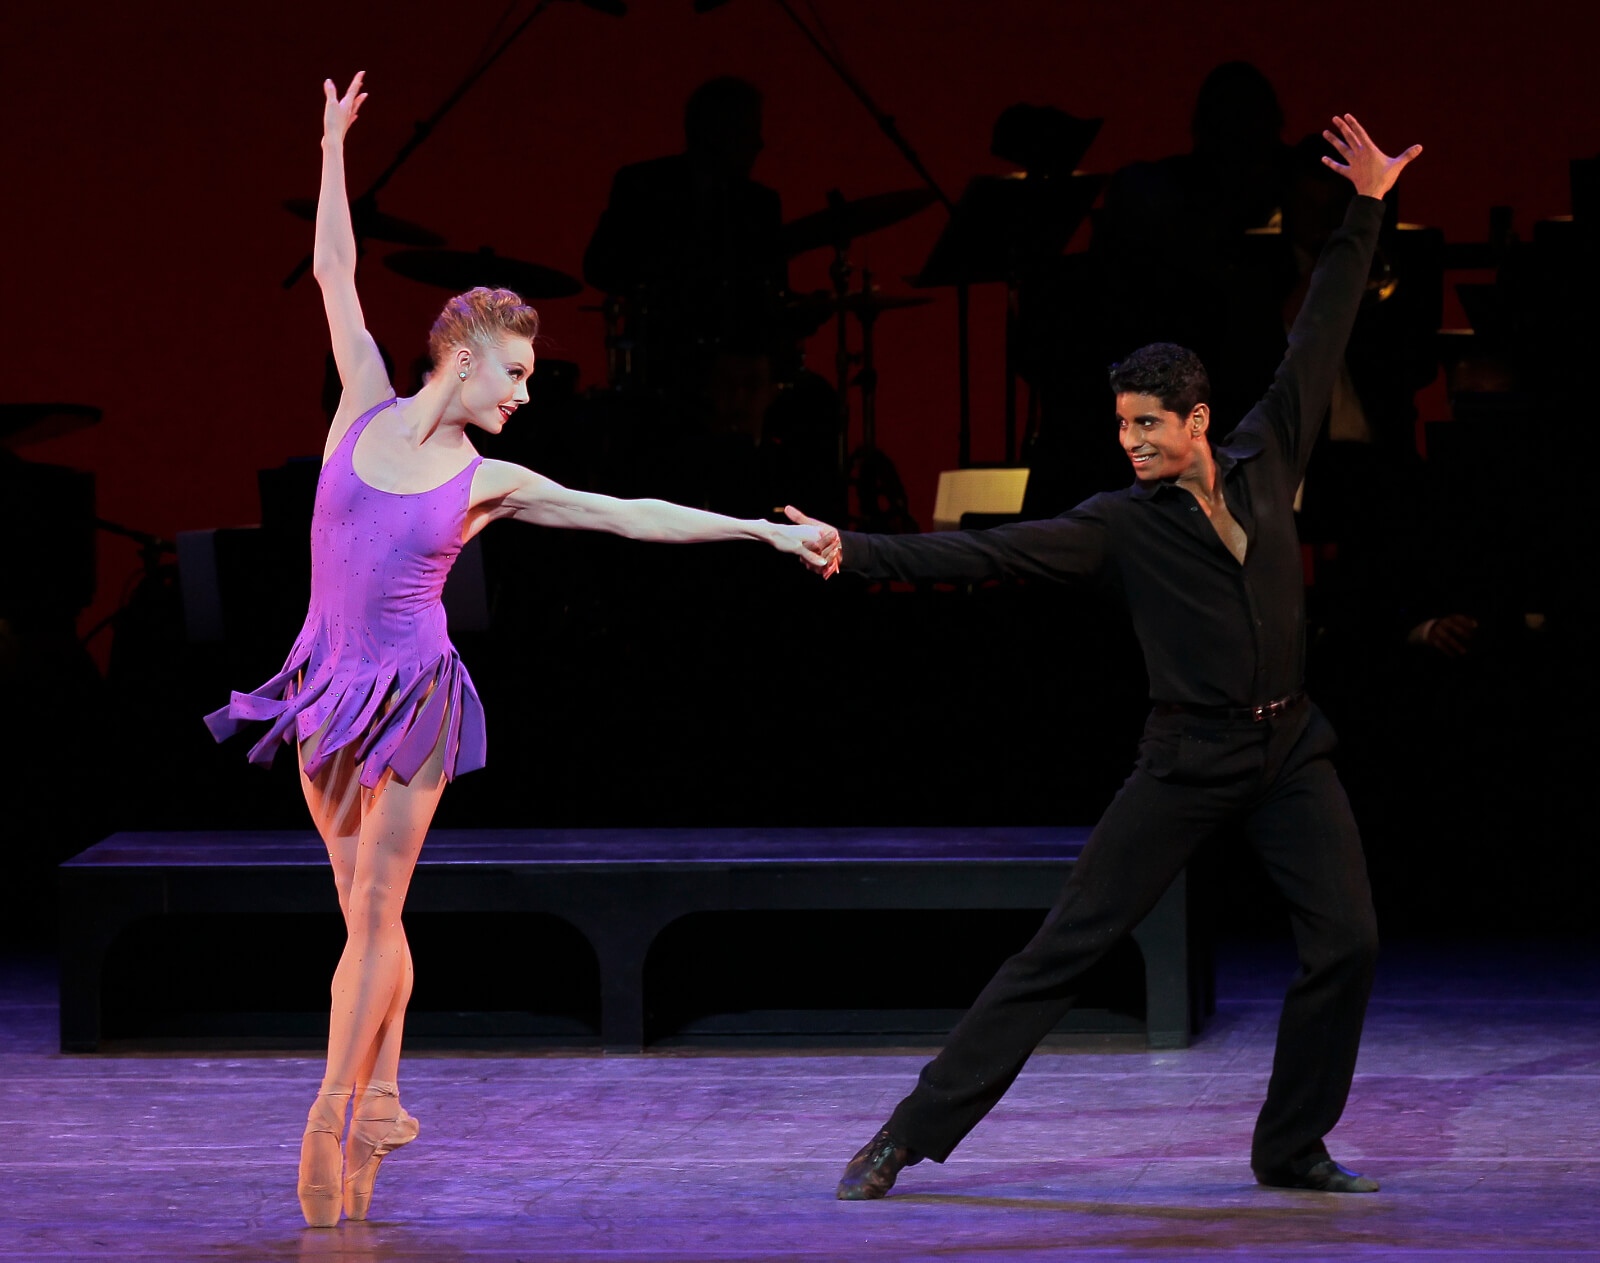 Frankie (Sara Mearns in purple) and Johnny (Amar Ramasar in all black) in a partnering section of For the Love of Duke.